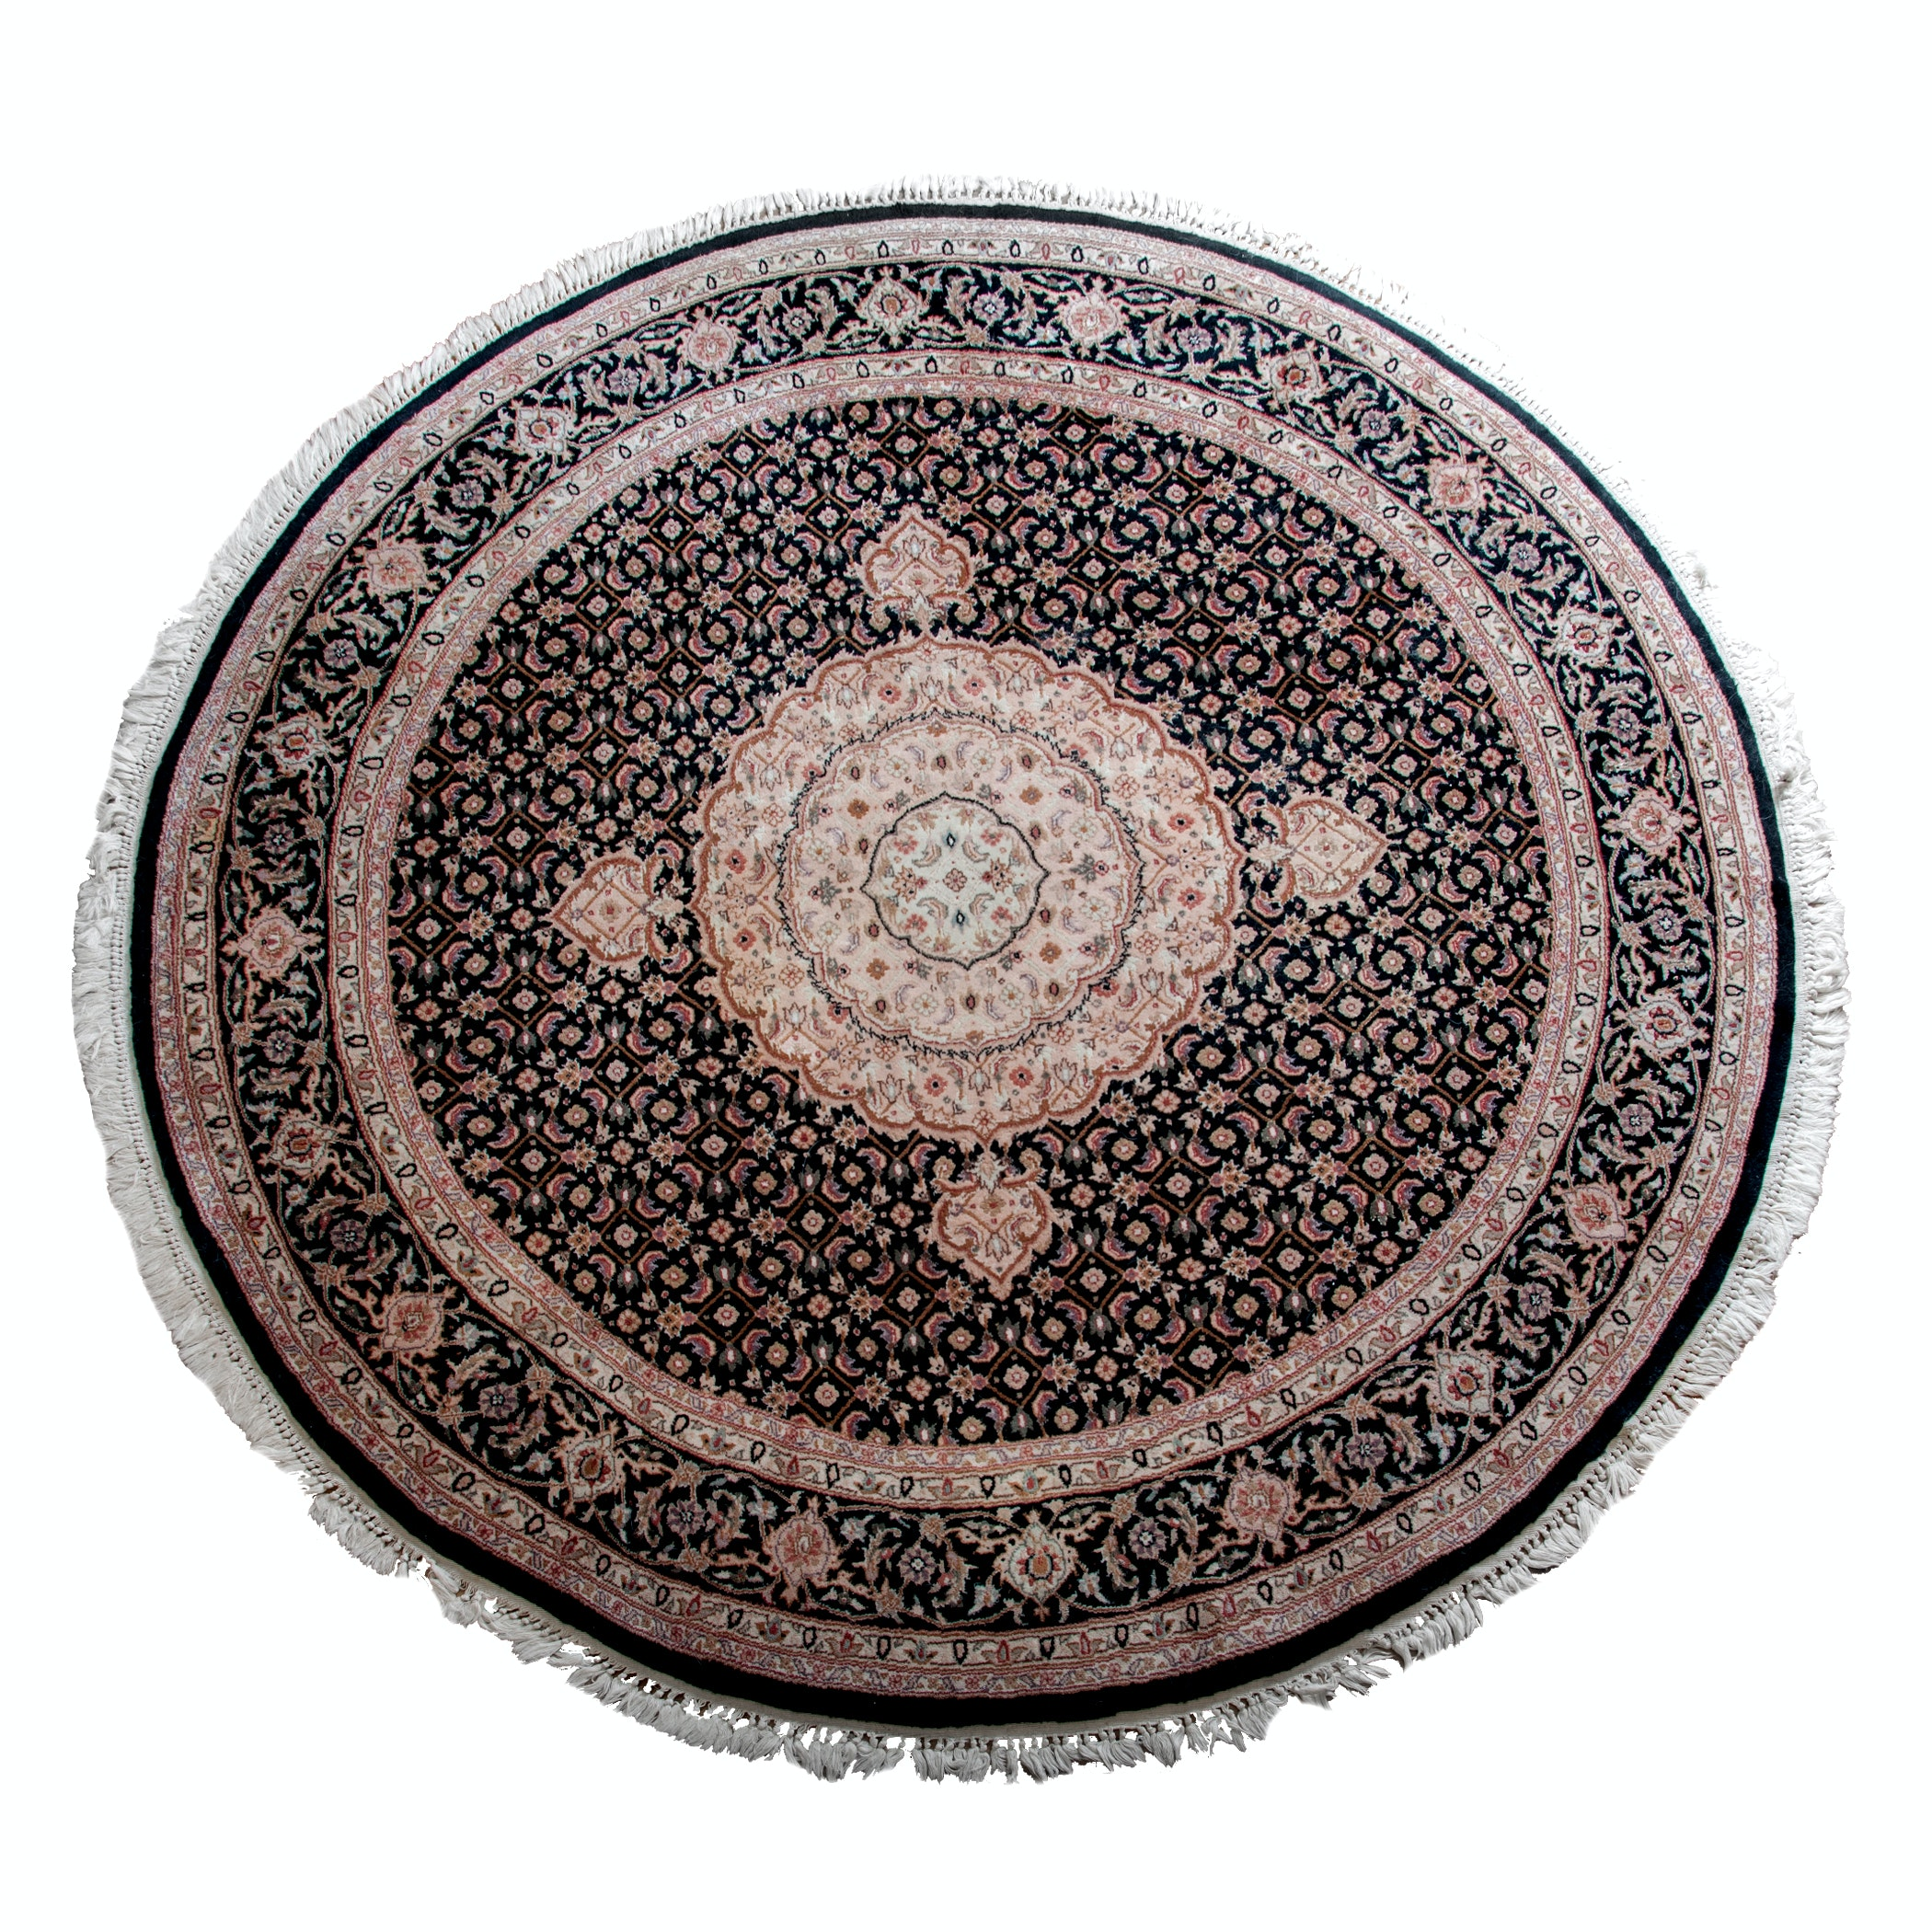 Hand-Knotted Circular Indo-Persian Wool Area Rug